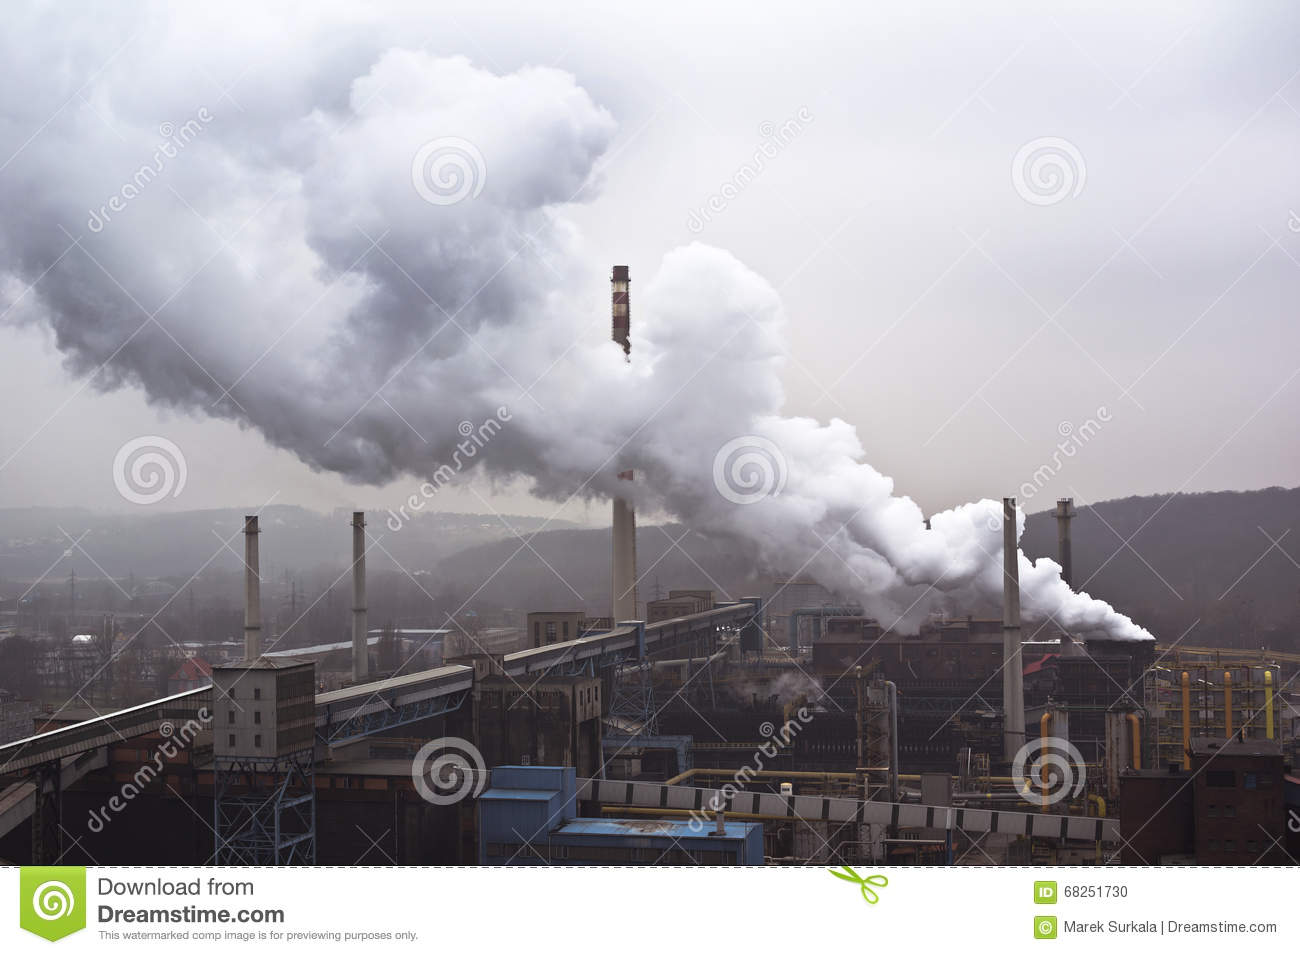 Pollution Cheminées Factory With Many Smokestacks And Big Smoke Air Pollution